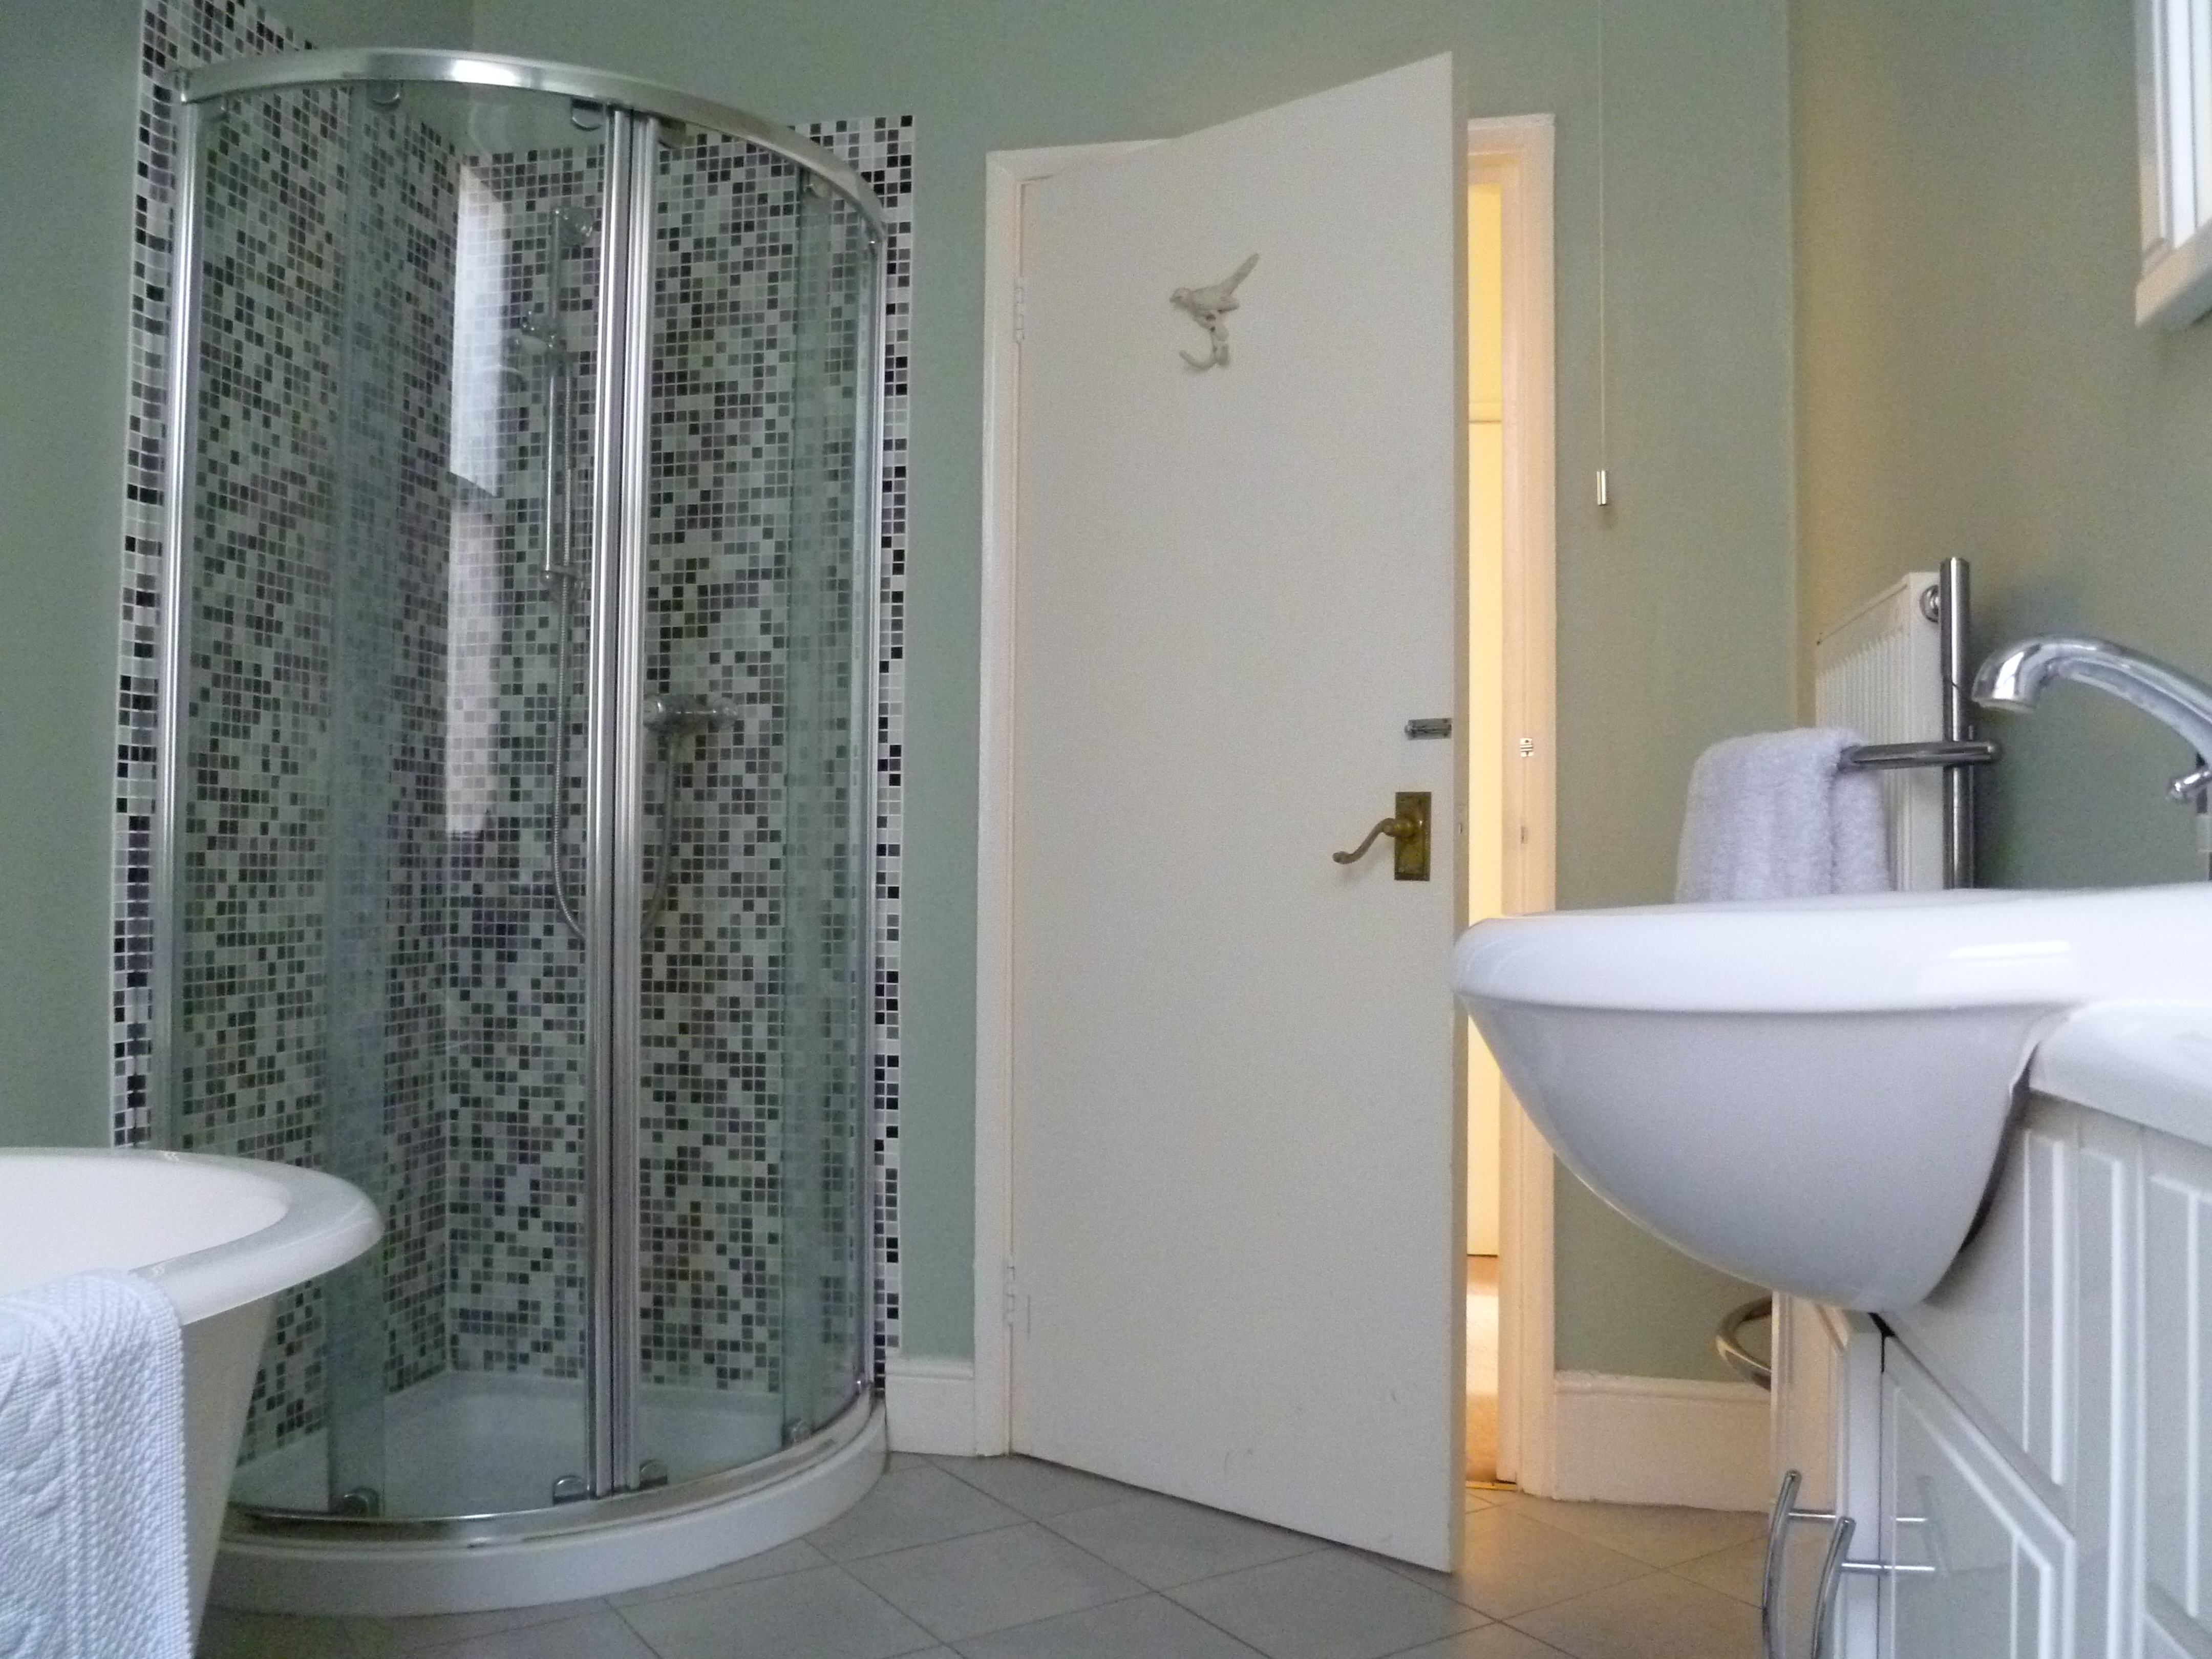 Bathroom ideas decorator 39 s notebook blog - Shower cubicles for small spaces decoration ...